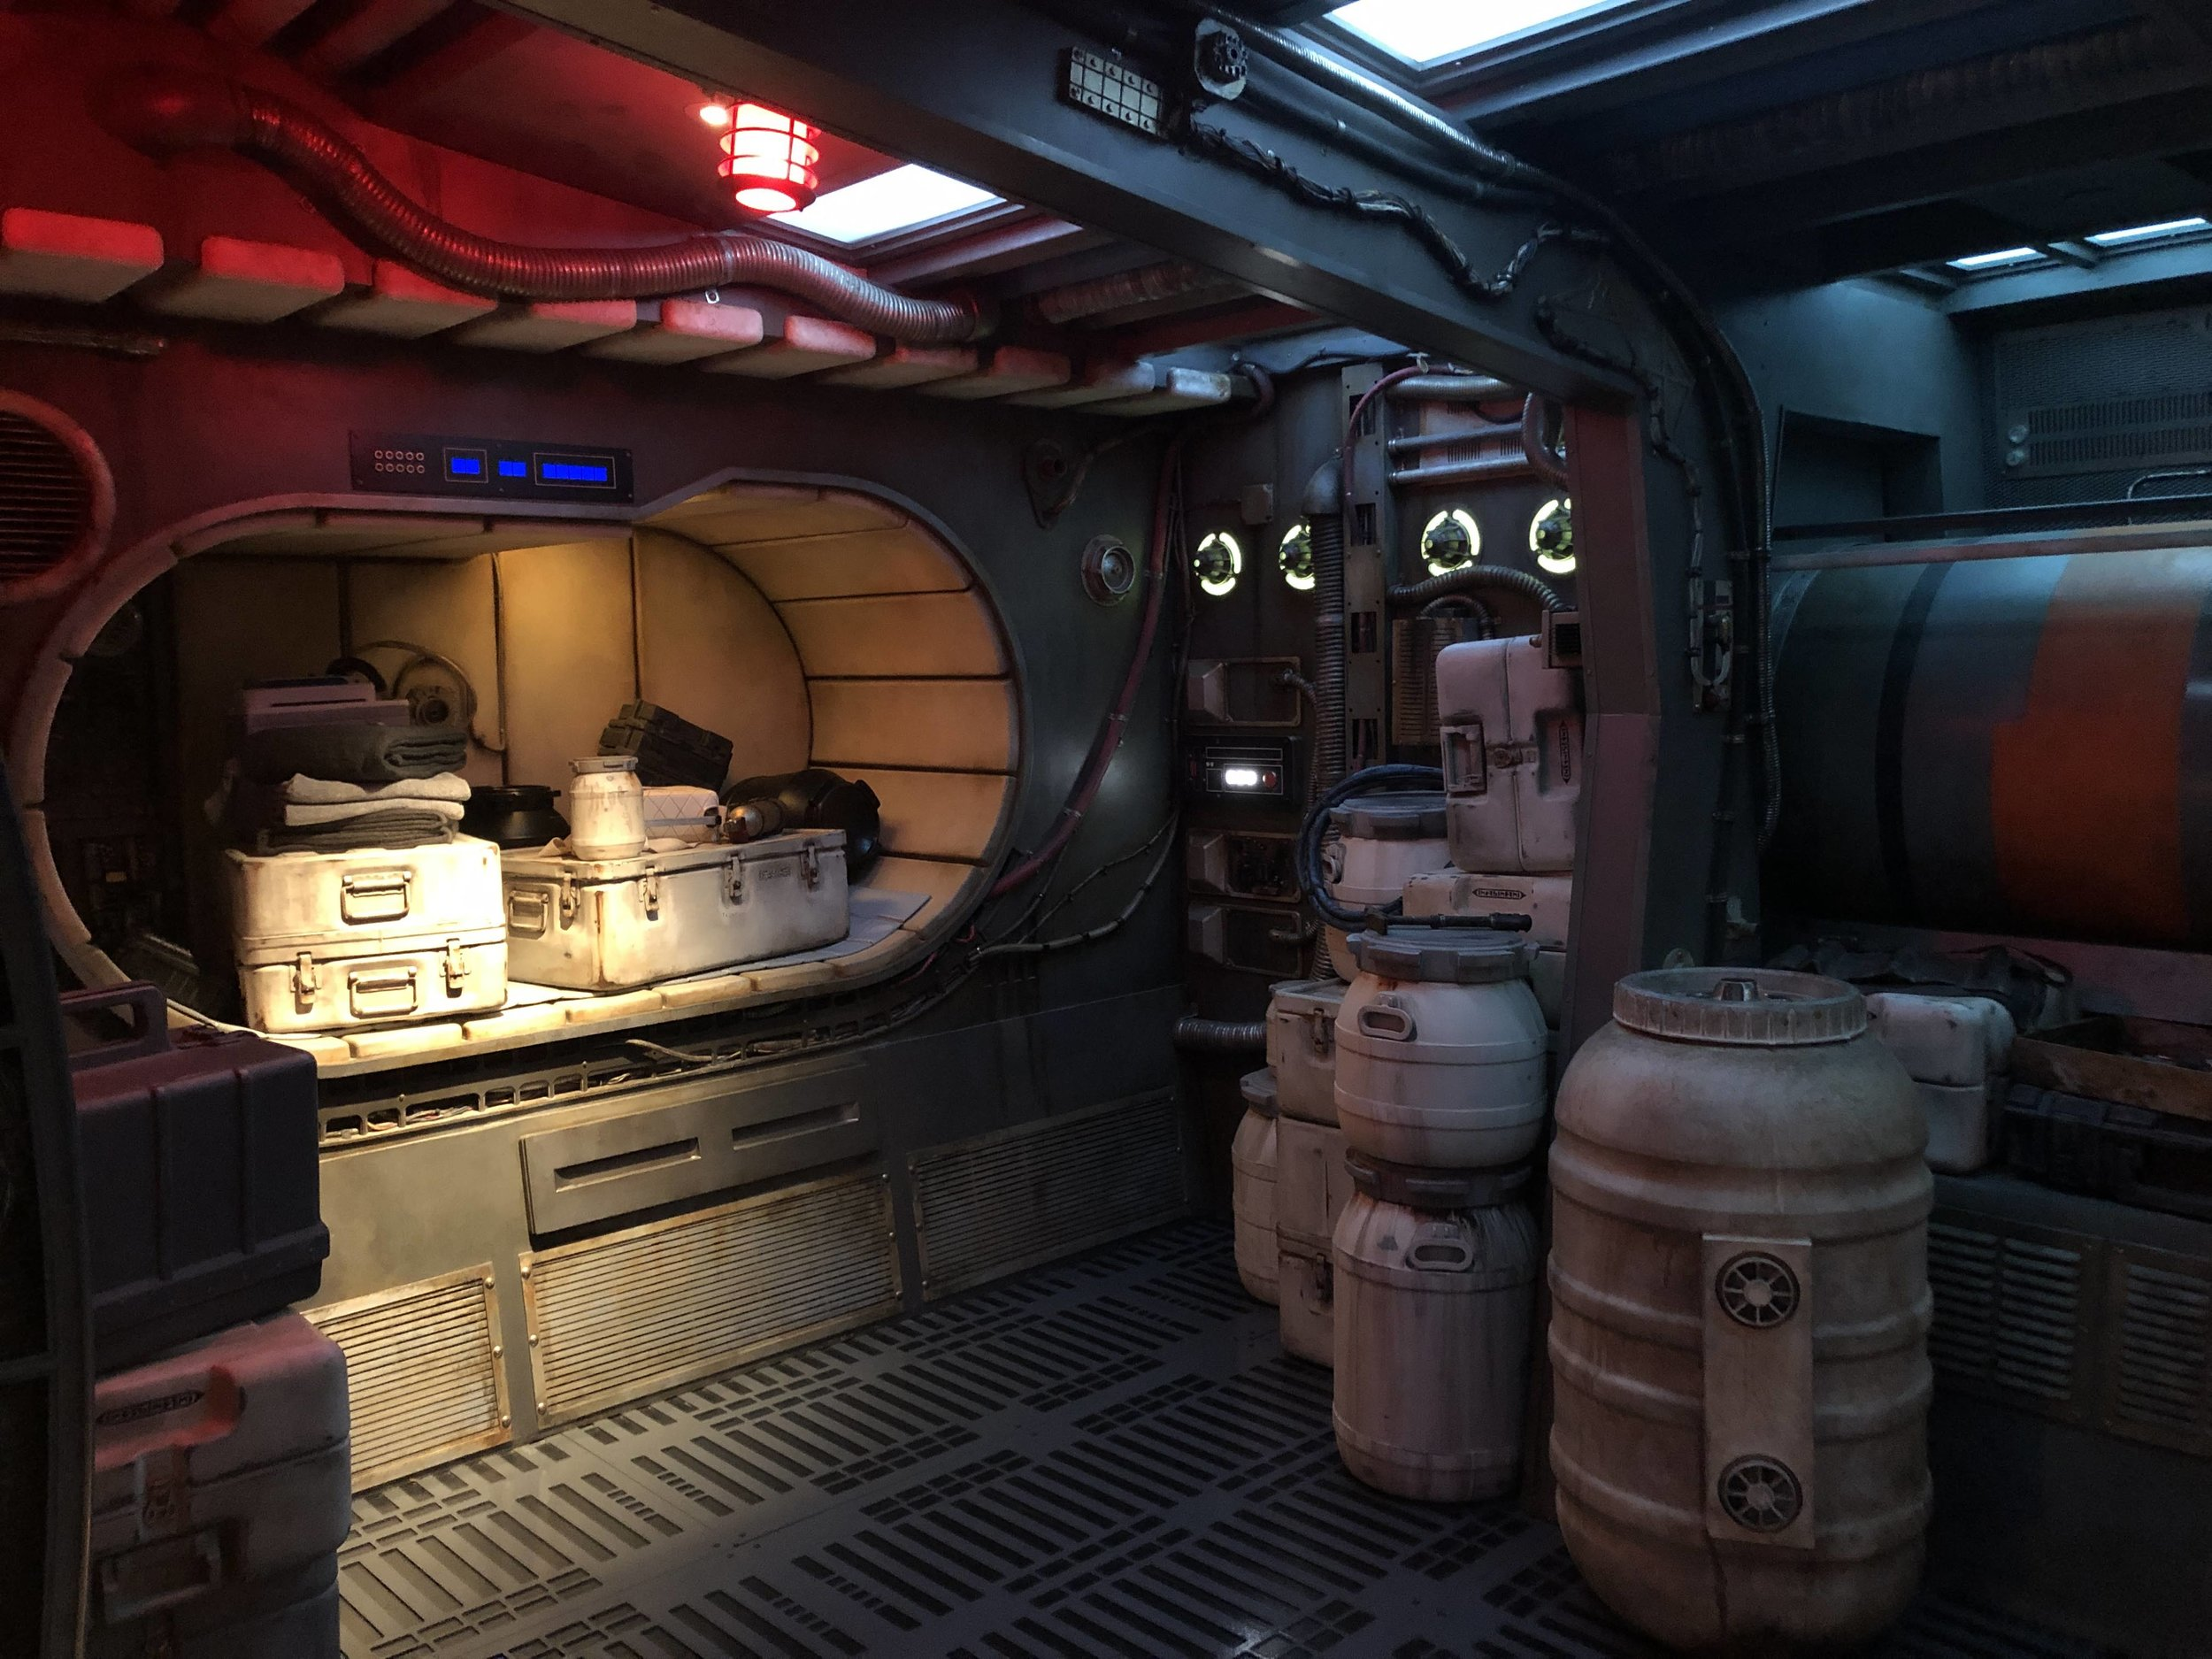 Inside the Millennium Falcon